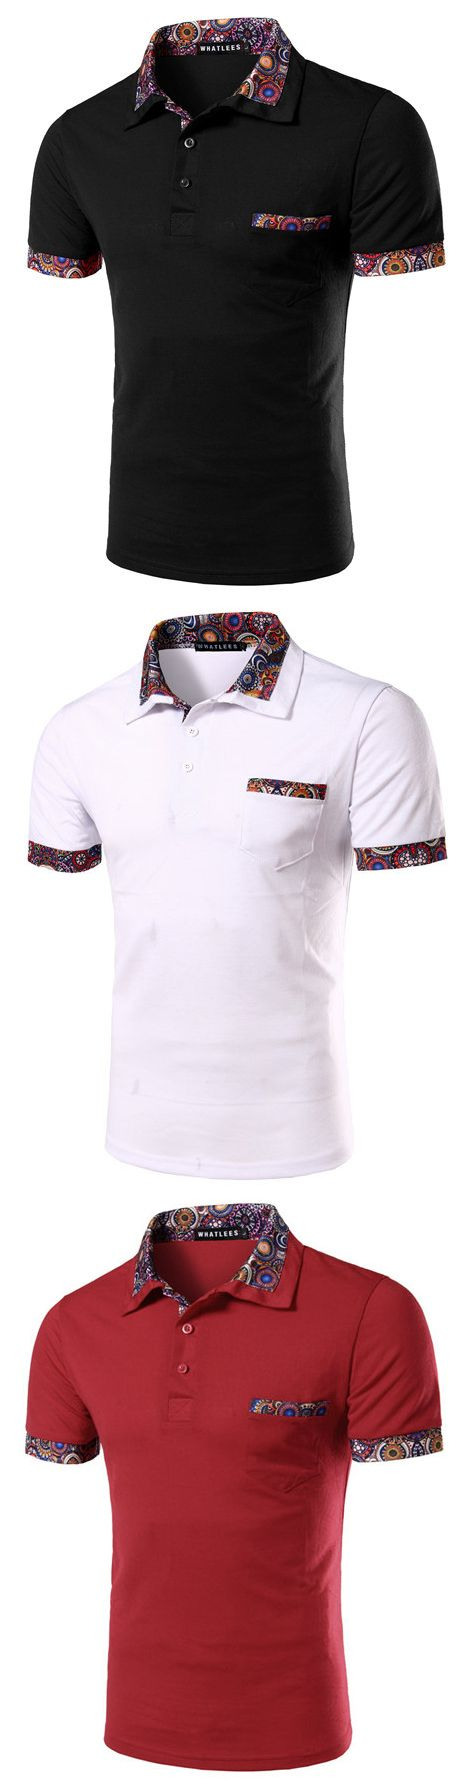 Mens Casual Polo Shirt Floral Printing Short Sleeve Slim Fit Spring Summer Tops